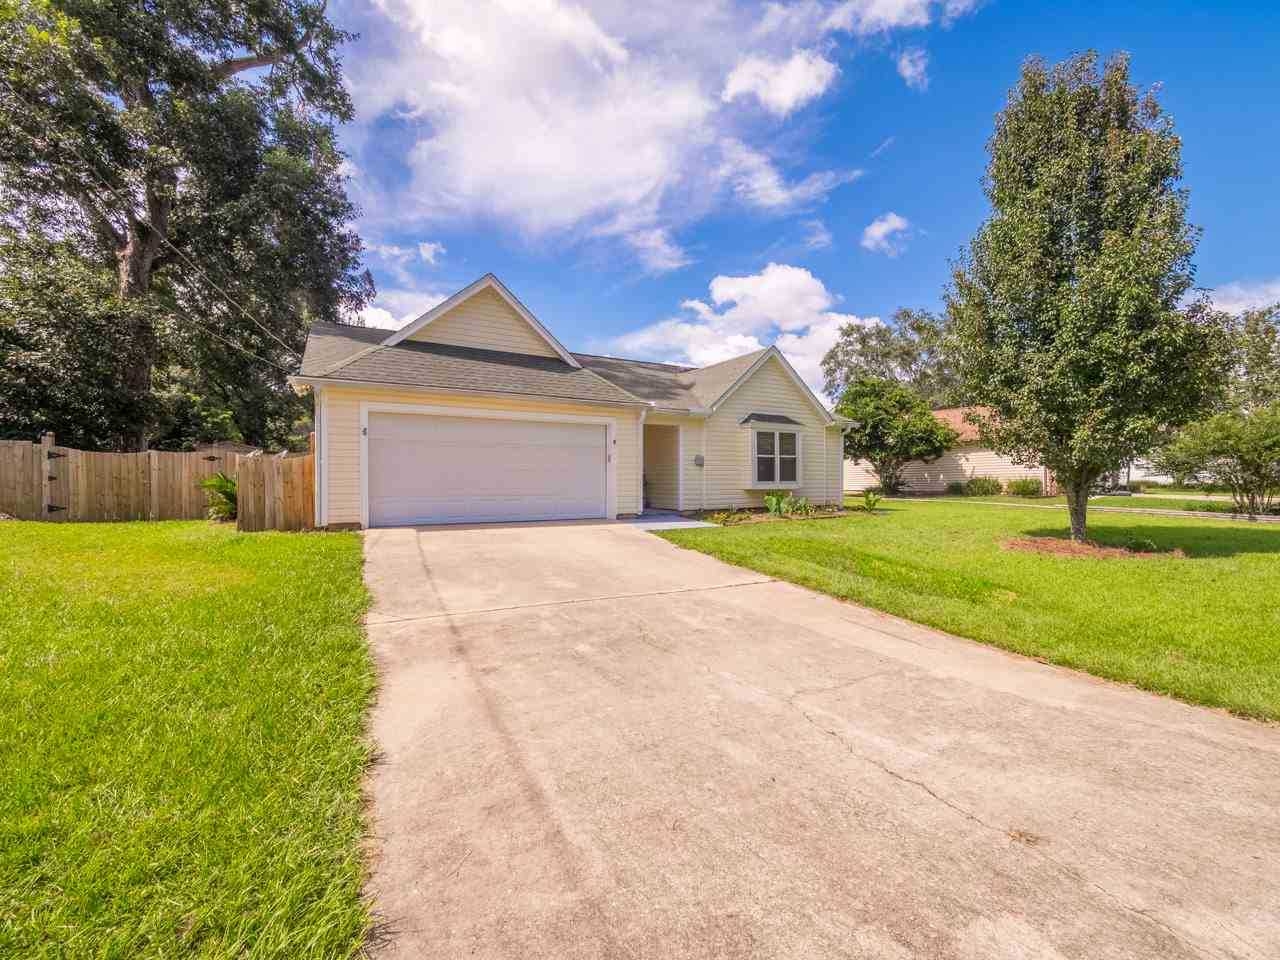 3096 Whirlaway Trail Tallahassee, FL 32309 in Killearn Acres Photo 1